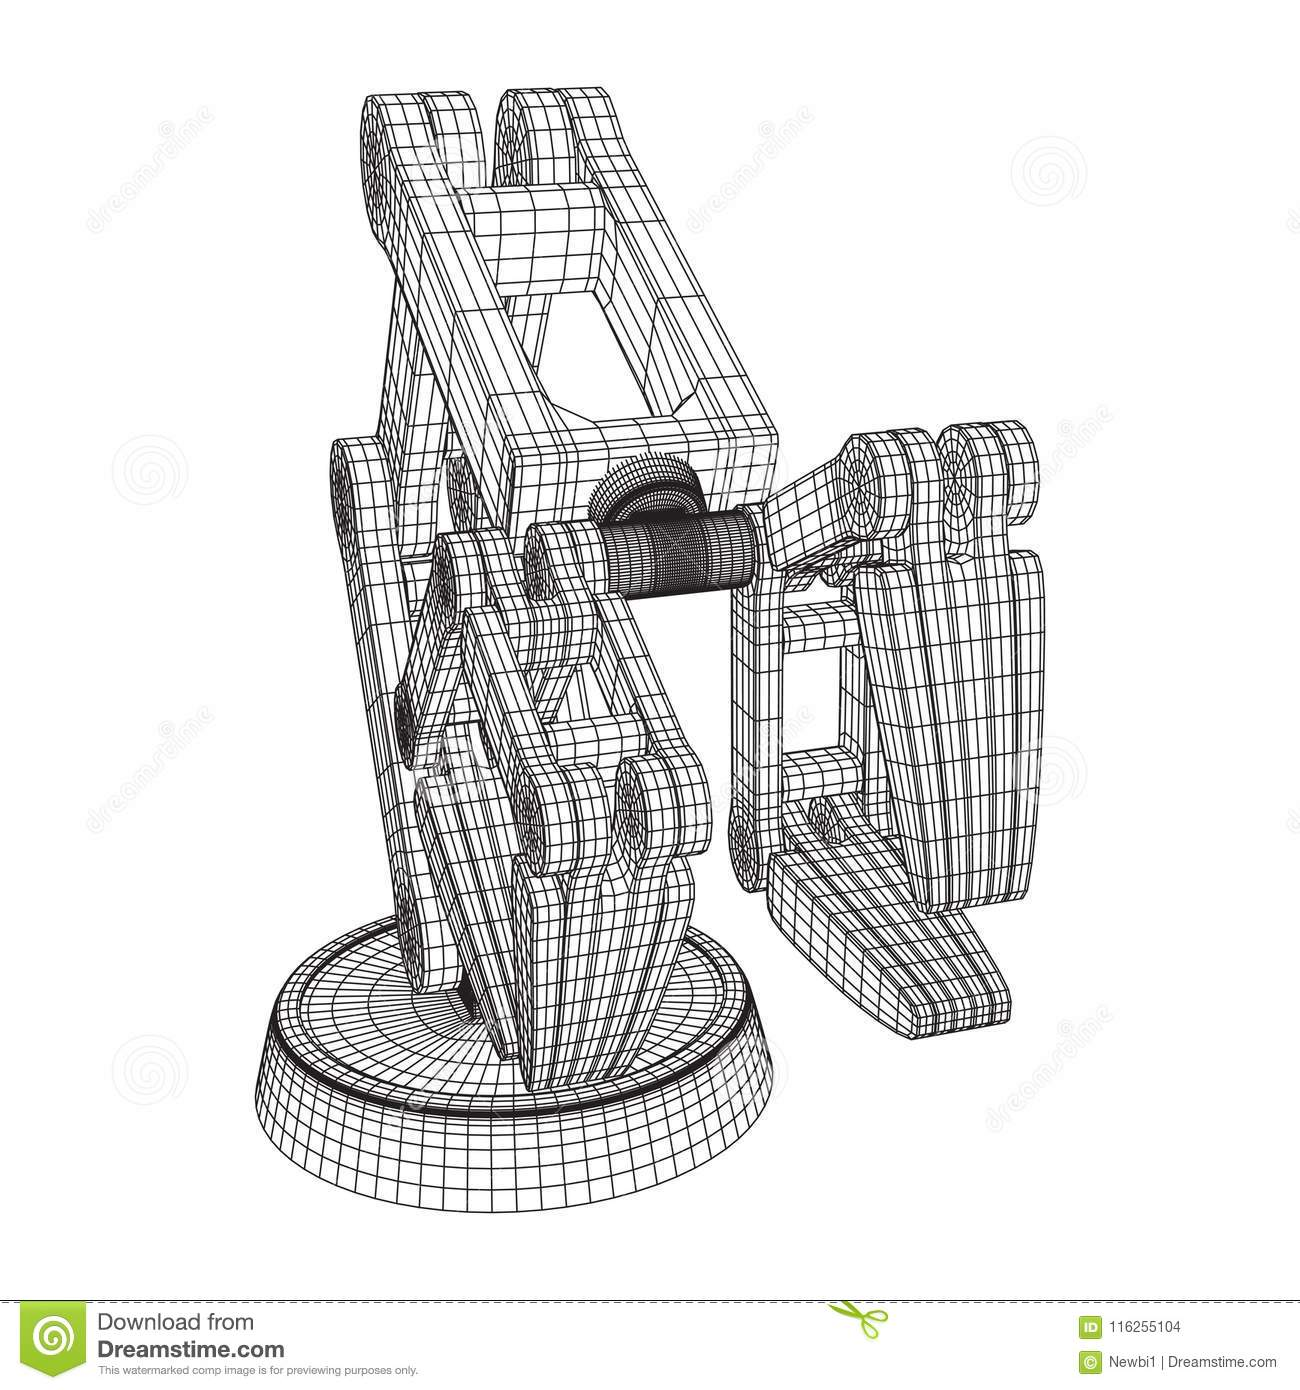 Robotic Arm Vector Stock Vector Illustration Of Engineering 116255104